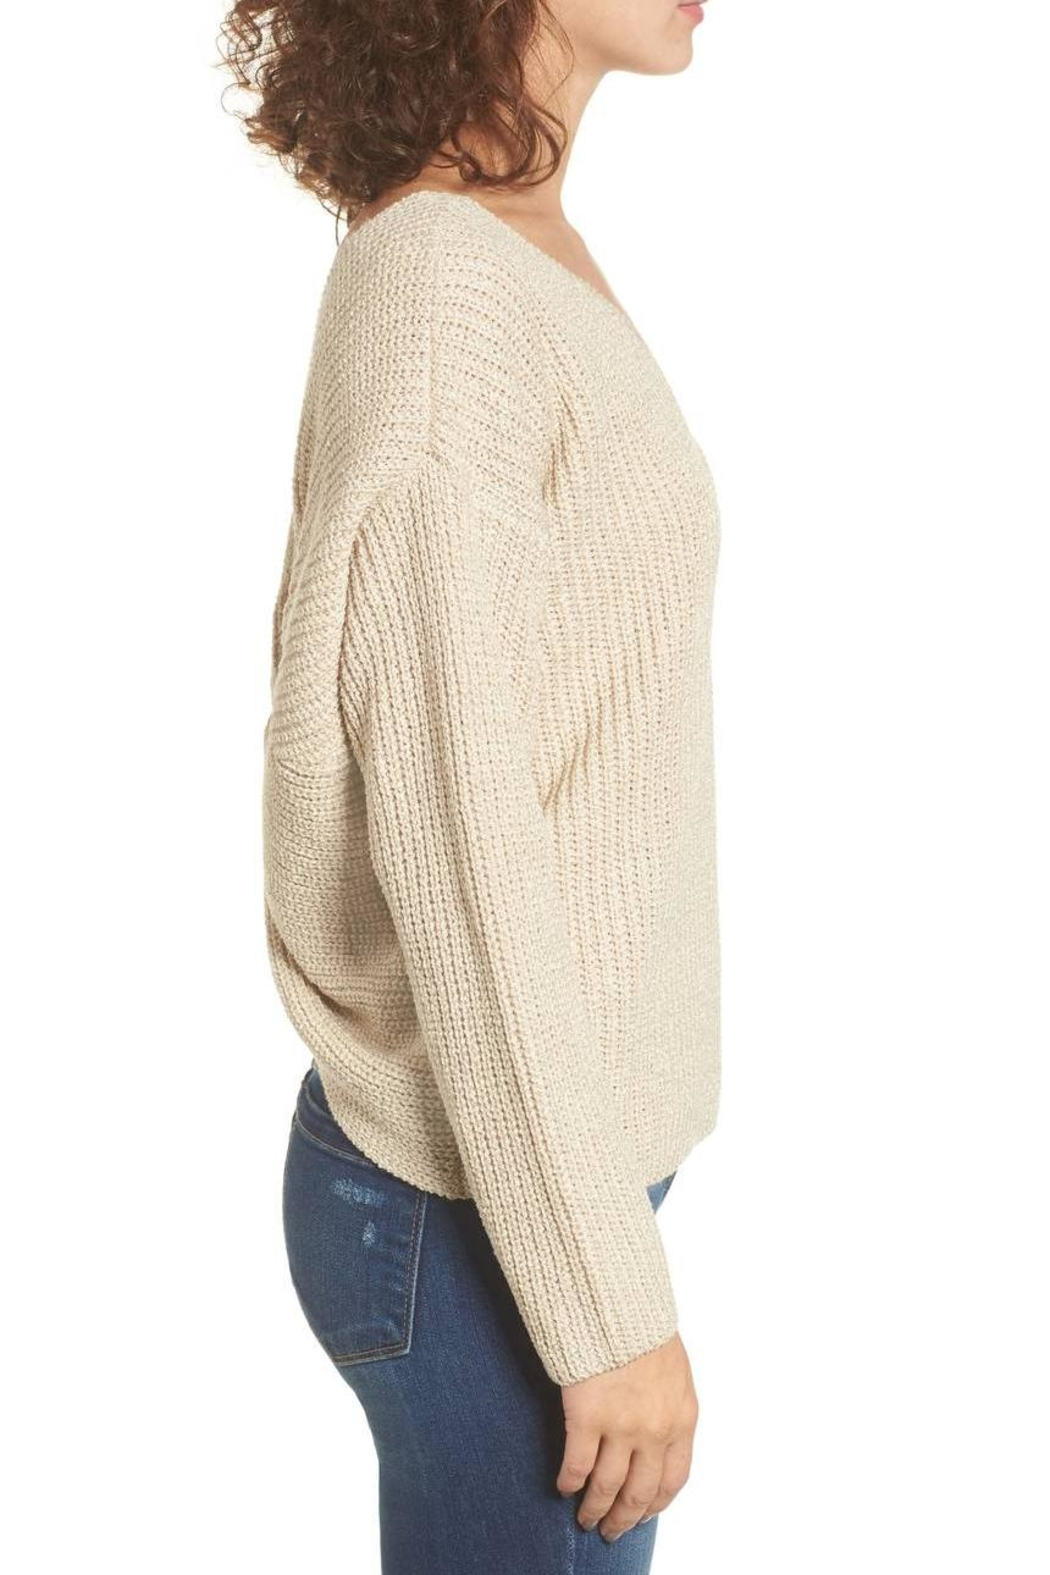 ASTR Twist Back Sweater - Back Cropped Image